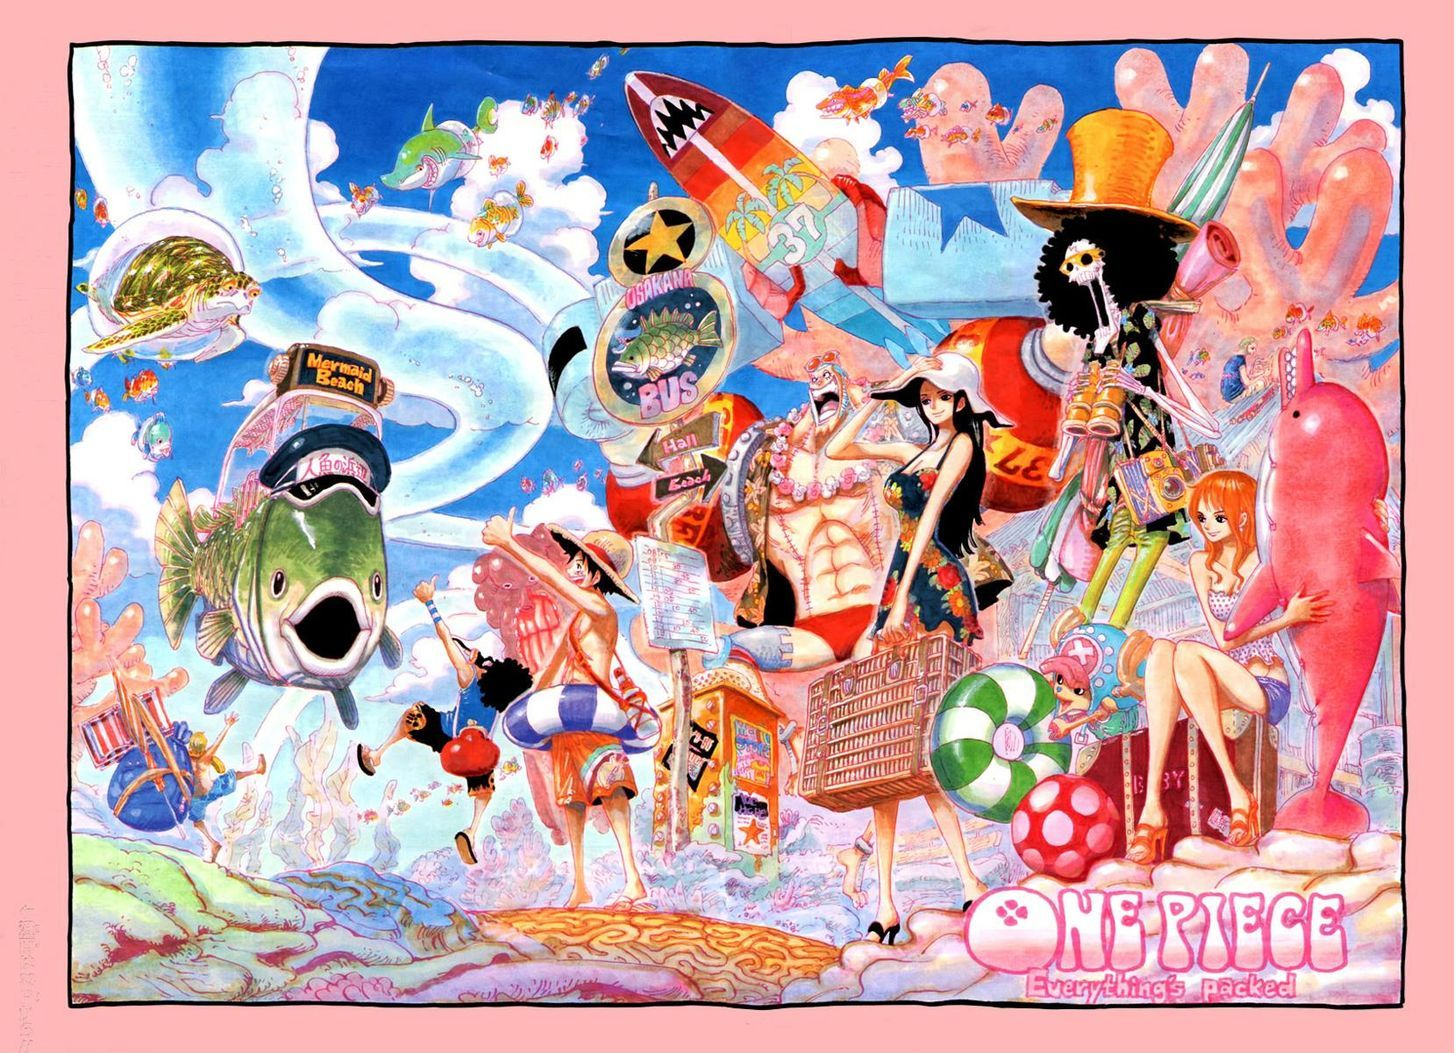 https://im.nineanime.com/comics/pic9/32/96/2991/OnePiece6421887.jpg Page 2